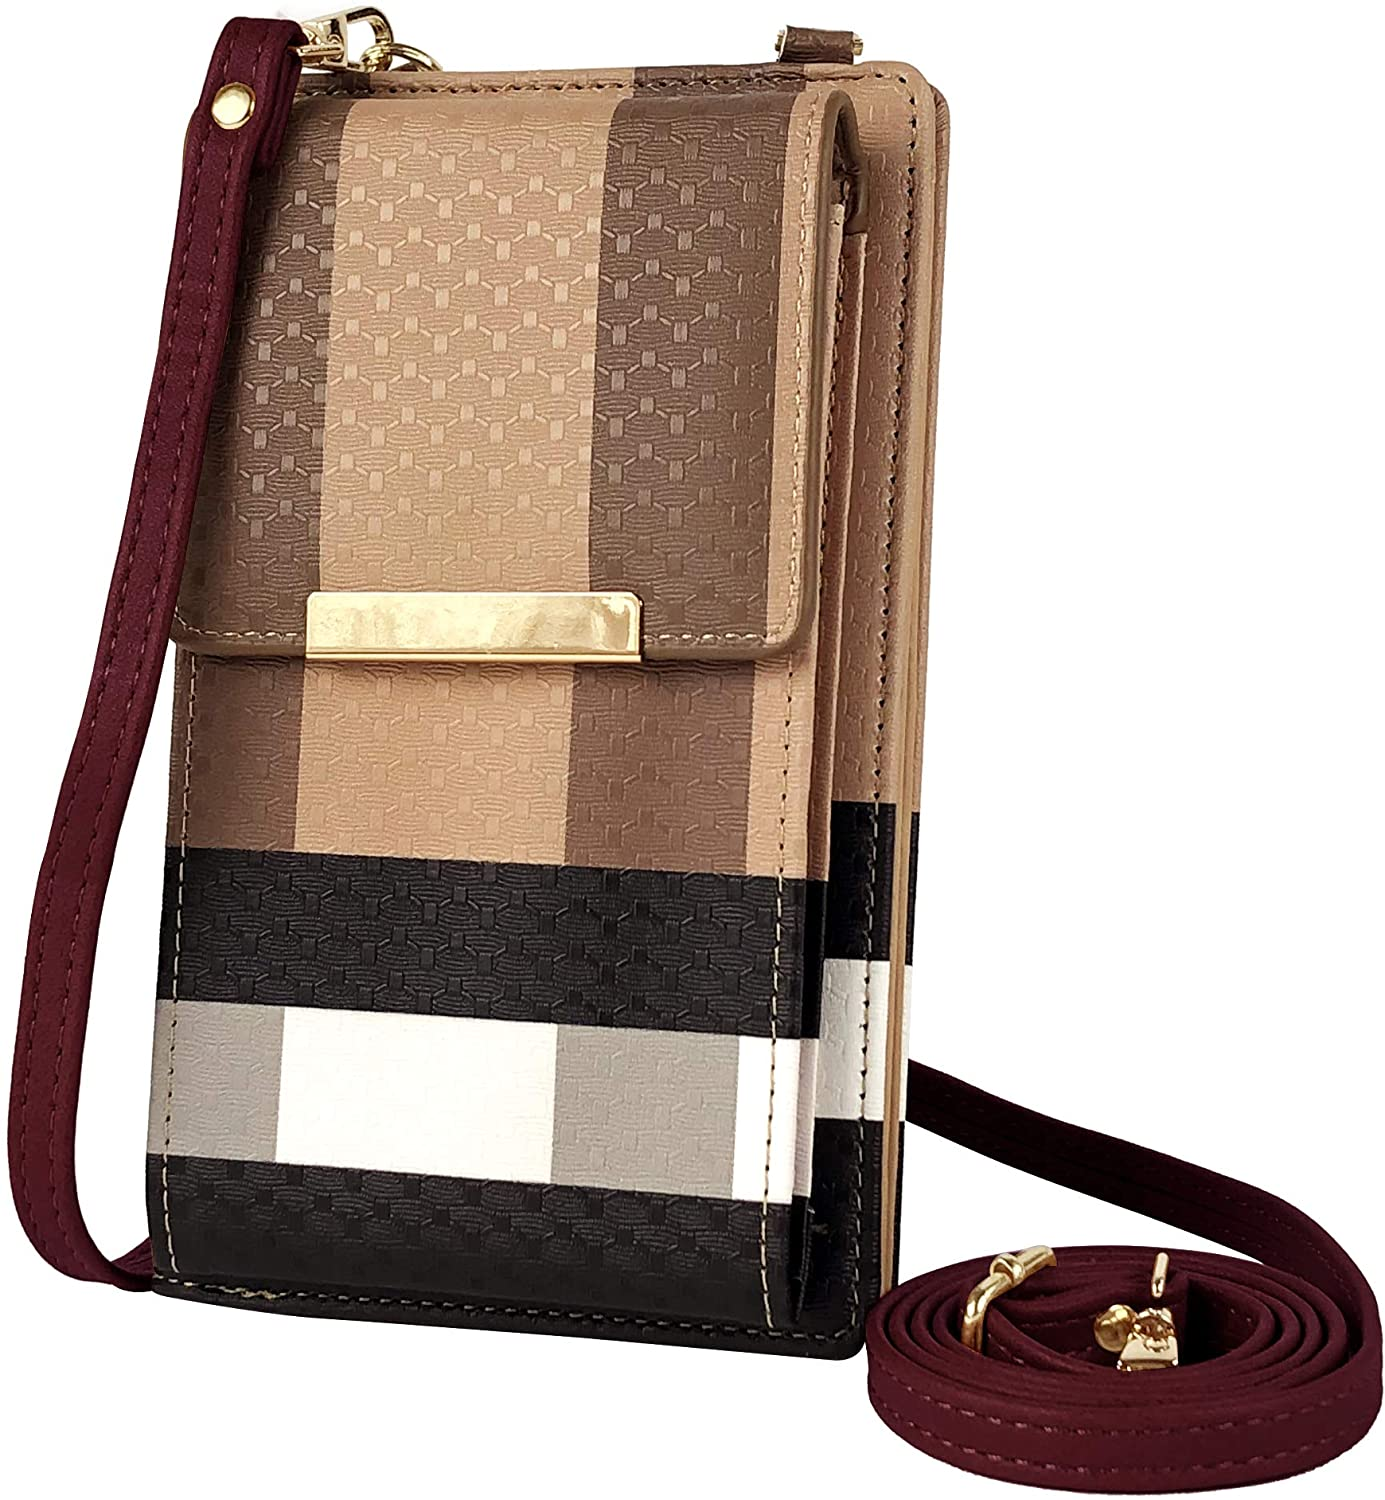 Deluxity Gianna Stylish Lightweight Small Plaid Cellphone Crossbody Bag Shoulder Purse for Women